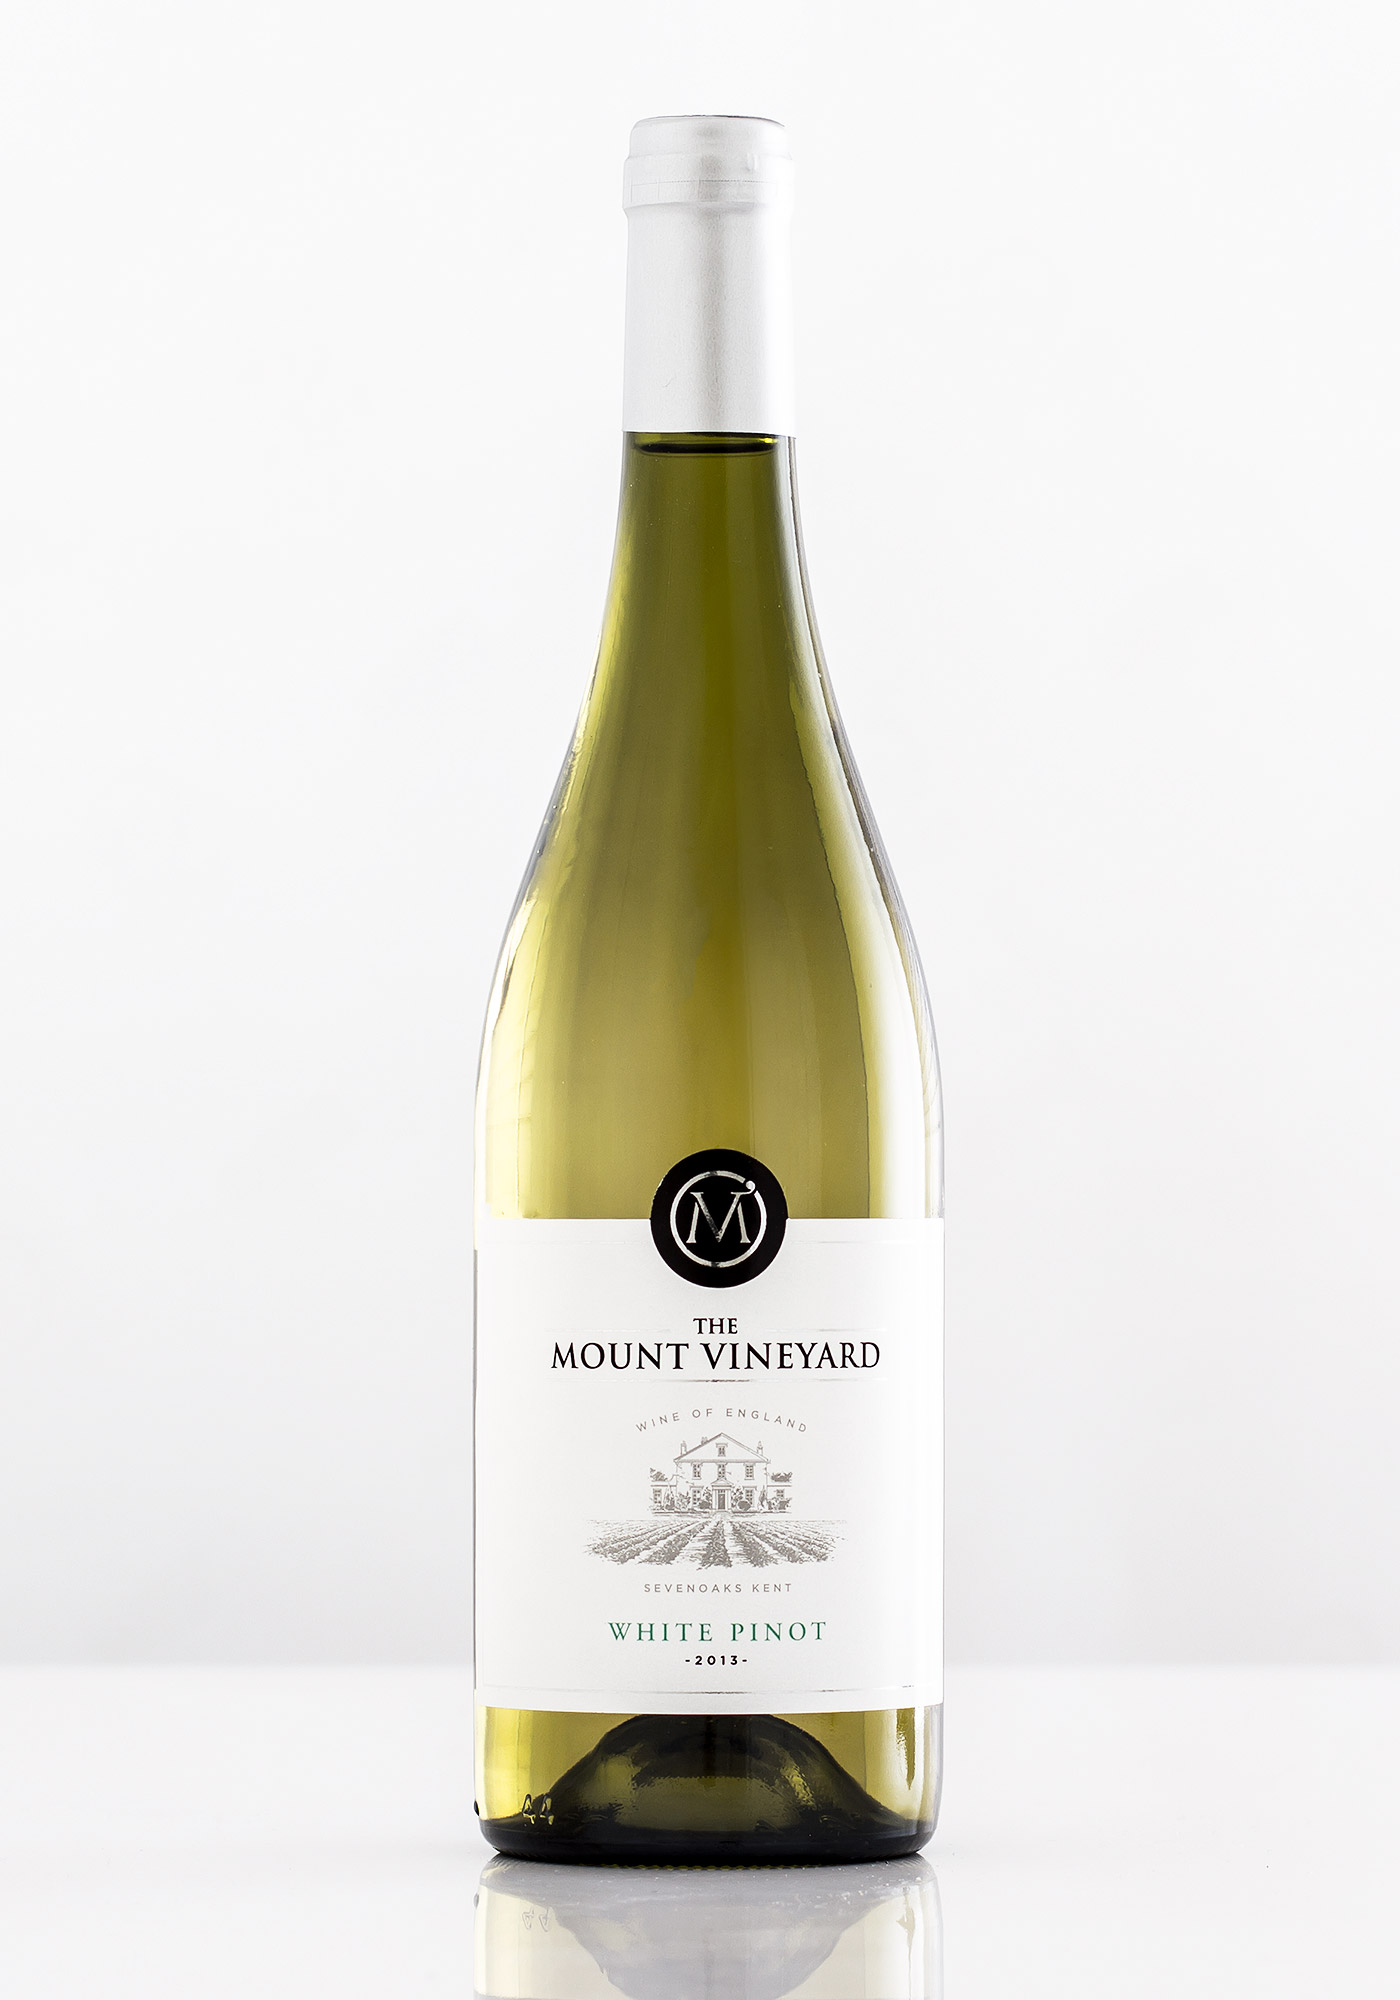 pinot_mount_whitepinot_2013